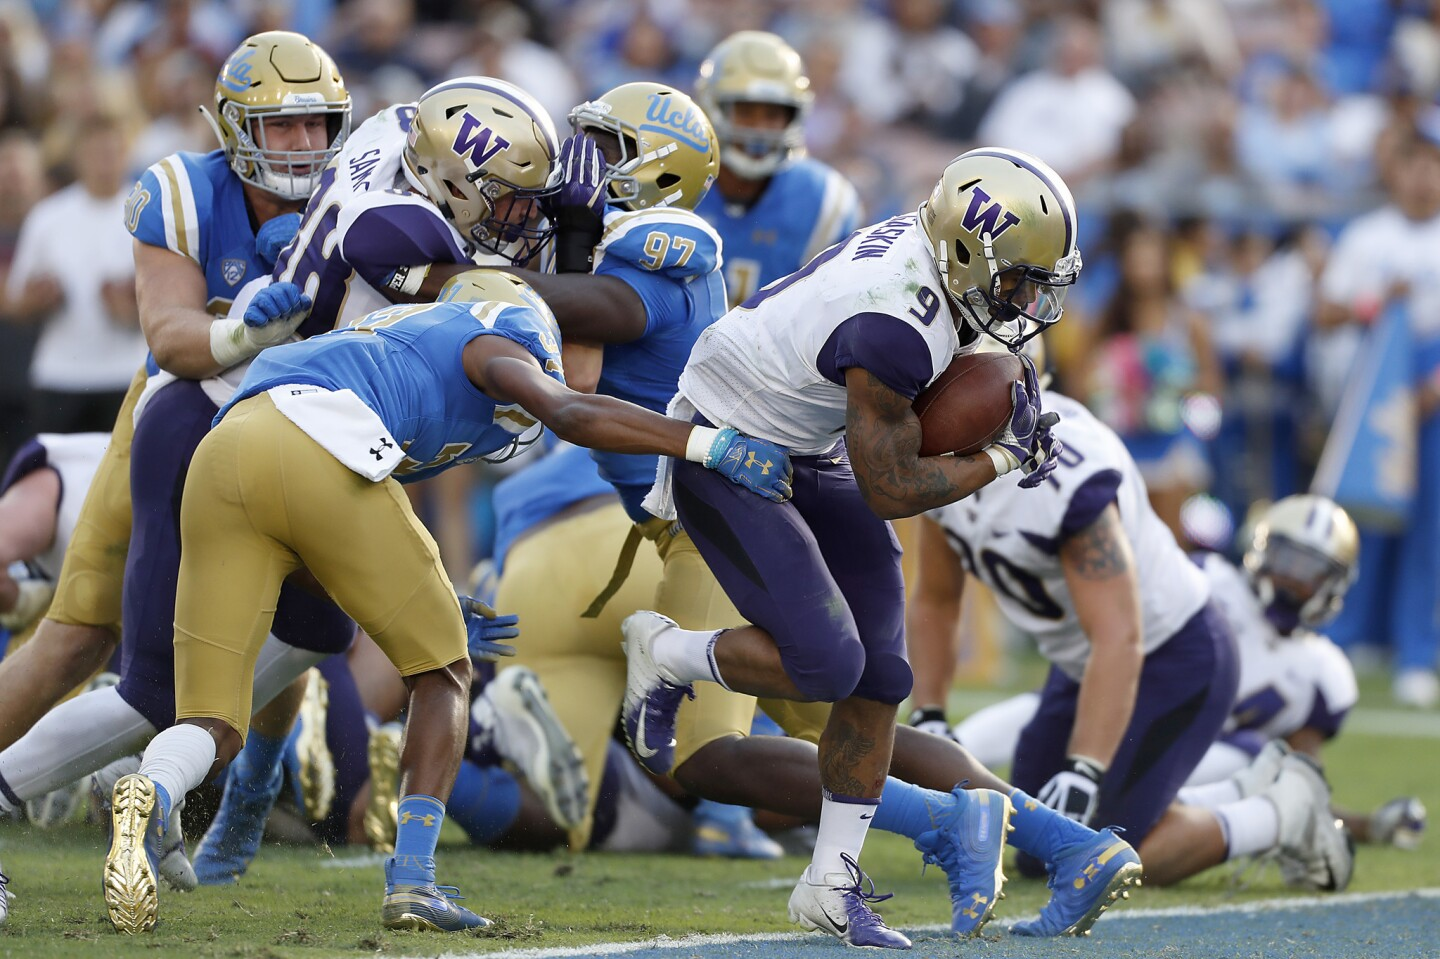 Washington tailback Myles Gaskin scores a touchdown against UCLA in the second quarter on Saturday at the Rose Bowl.